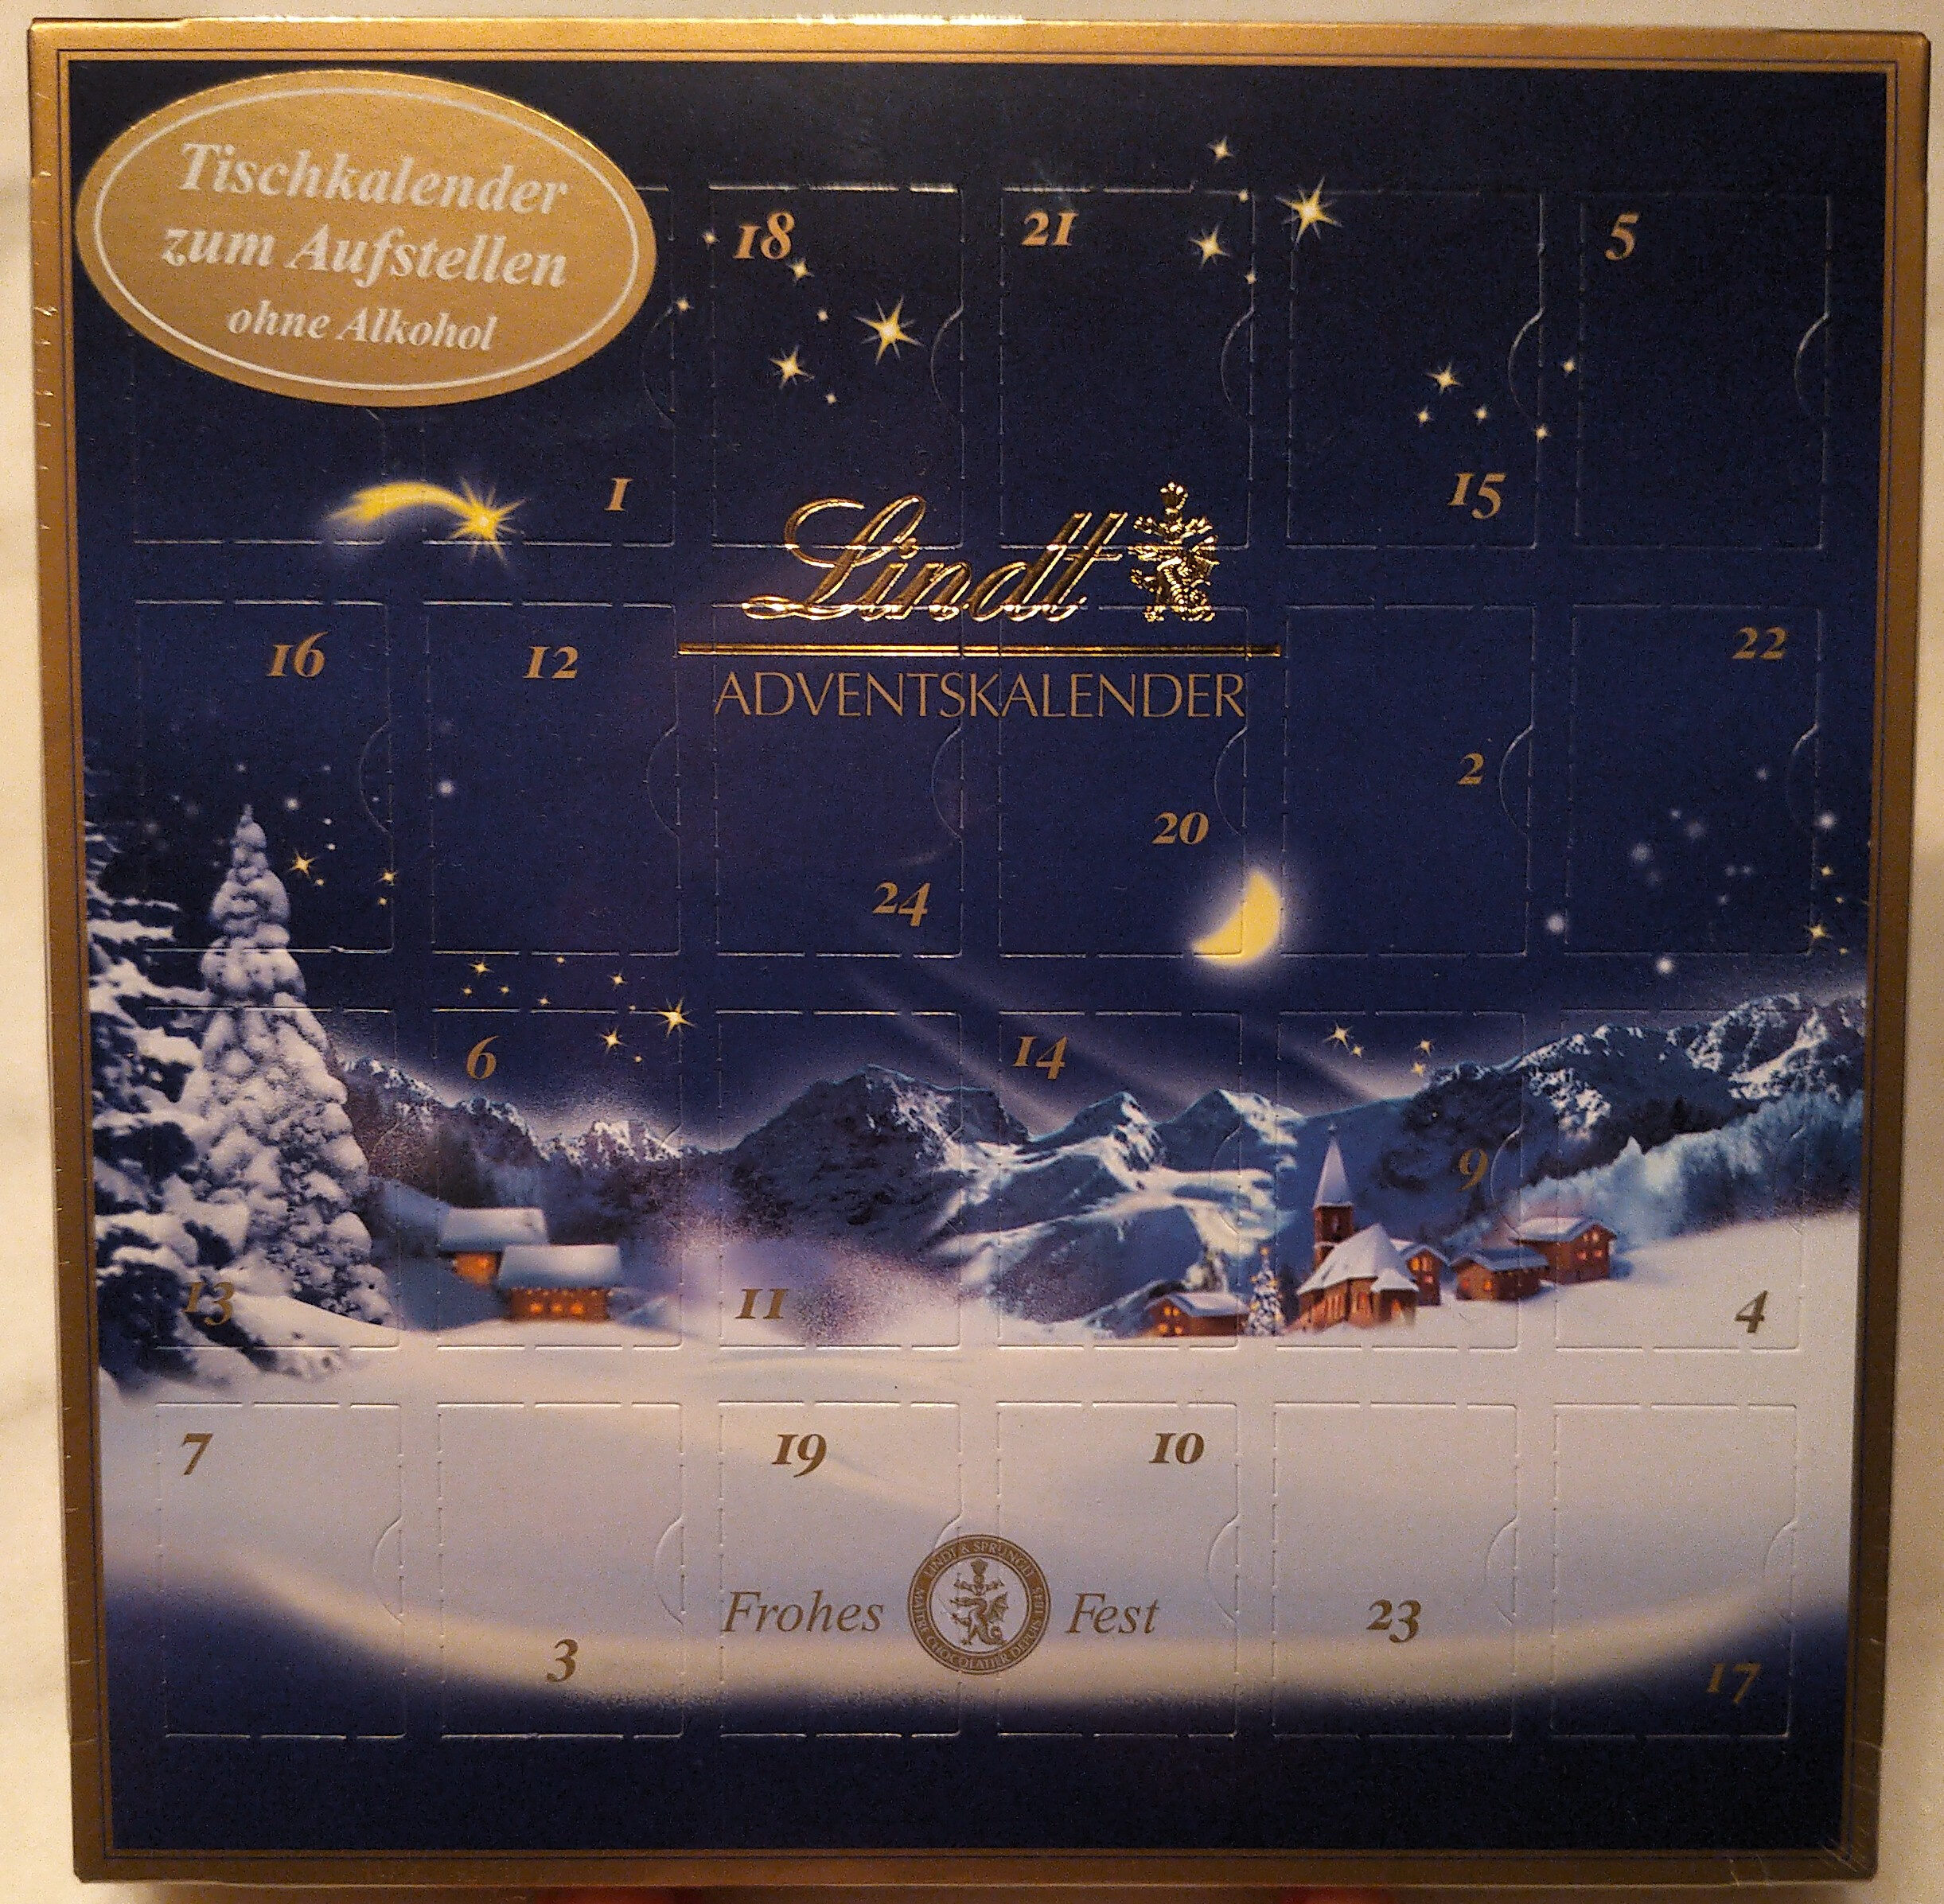 Mini-Kugeln Adventskalender - Produit